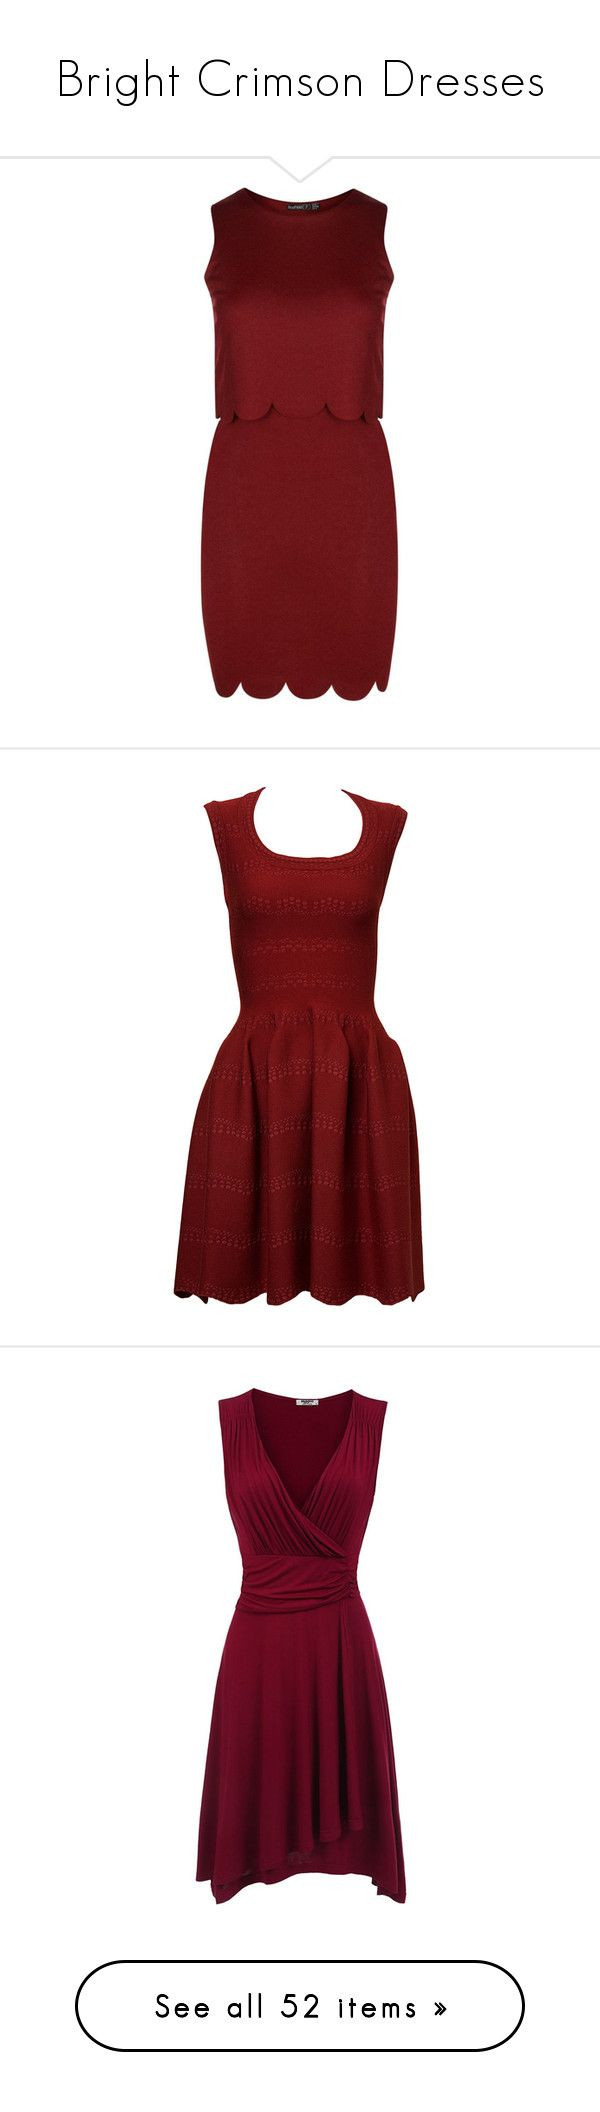 """""""Bright Crimson Dresses"""" by tegan-b-riley on Polyvore featuring dresses, red, sequin maxi dress, sequined dresses, red maxi dress, red sequin dress, sequin bodycon dress, clothing /, kirna zabete and polka dot dresses"""